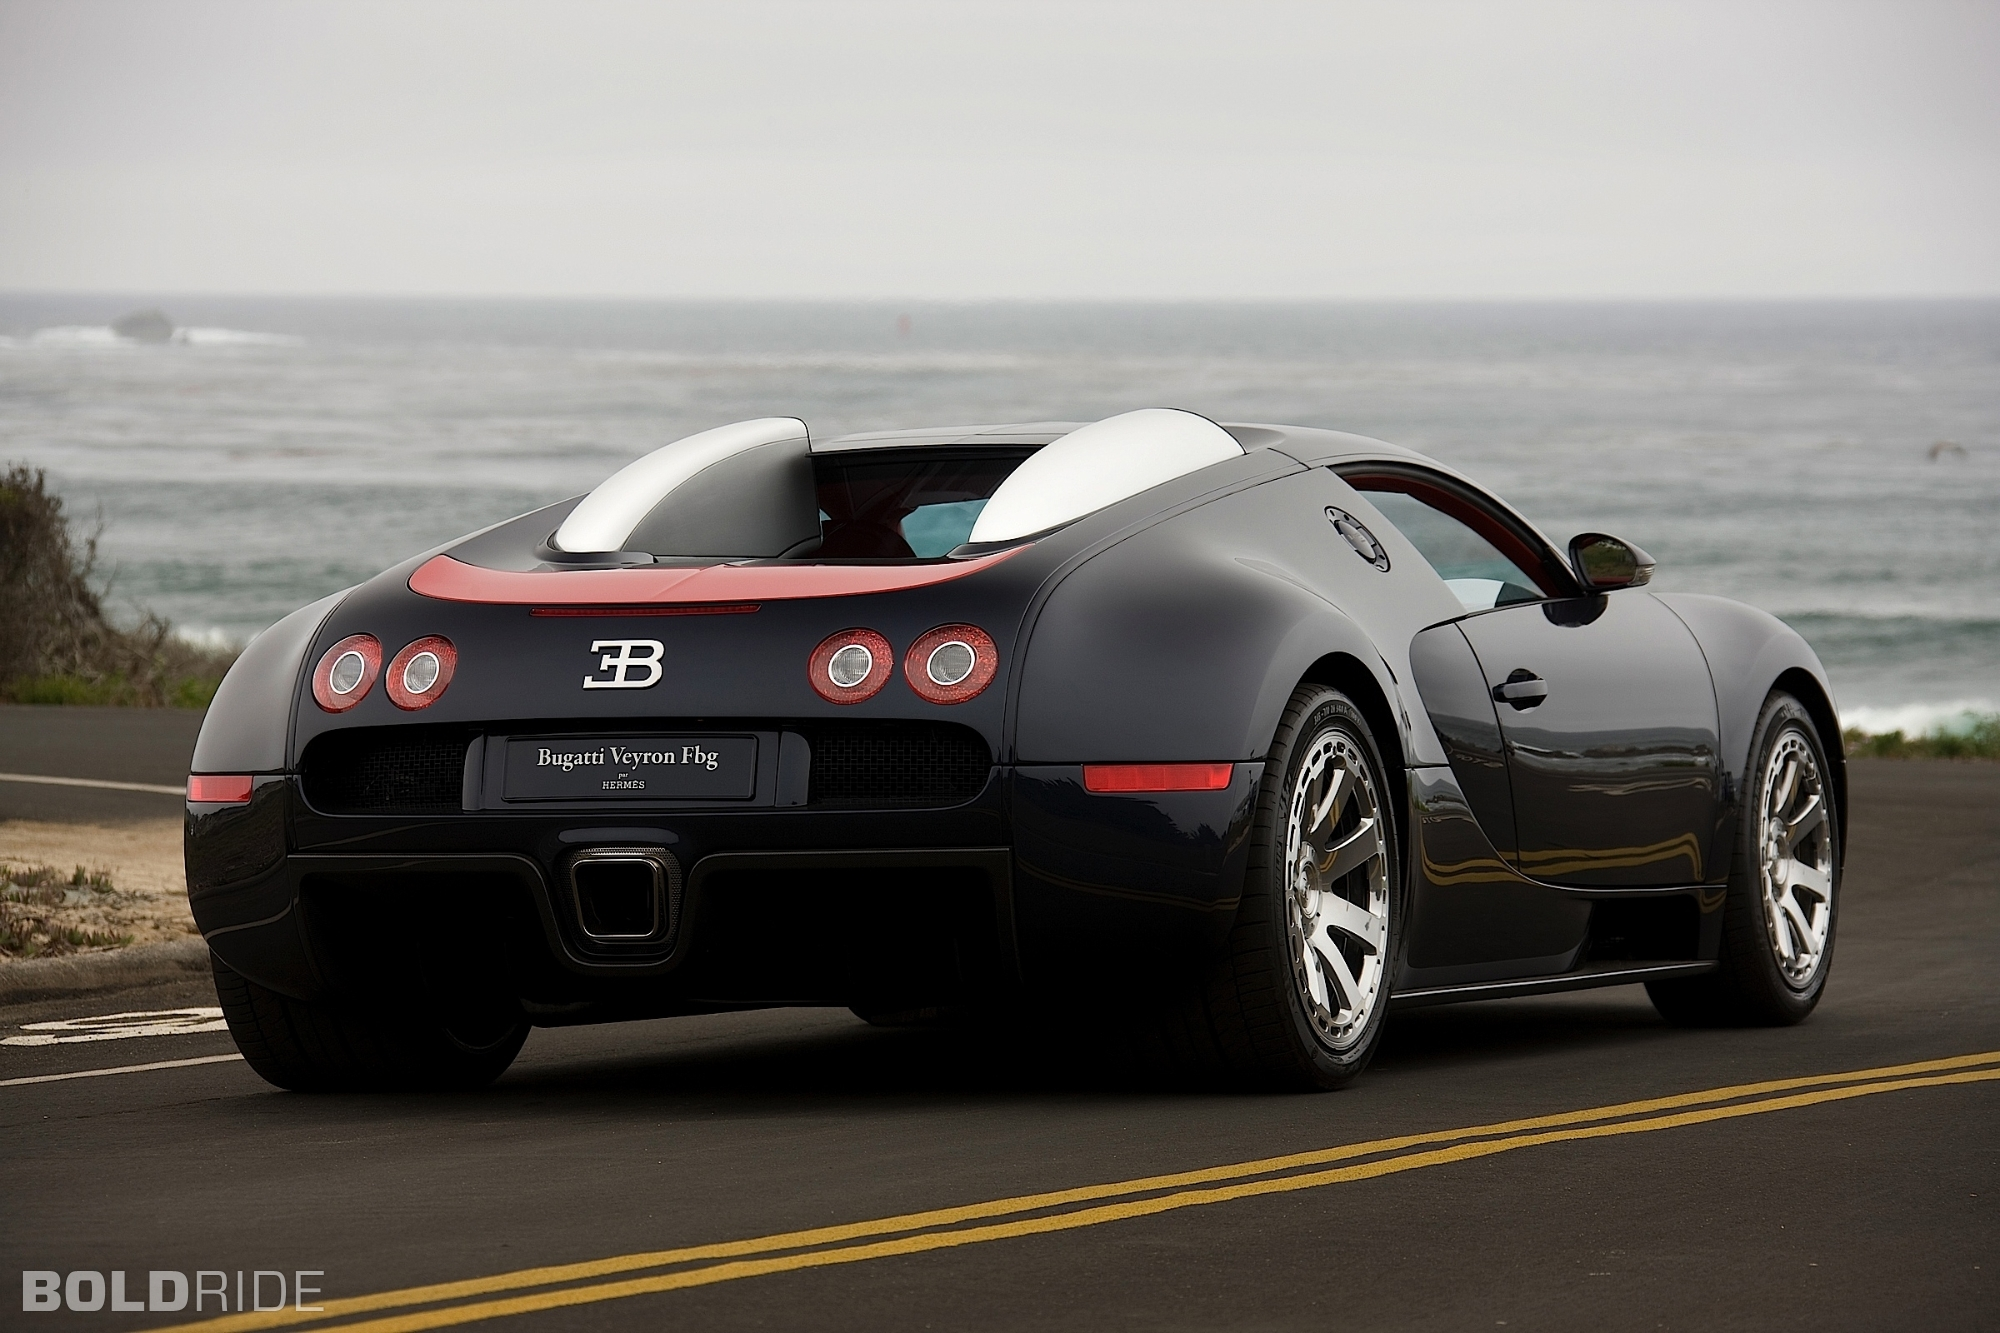 2009 Bugatti Veyron Fbg par Hermes photo - 2